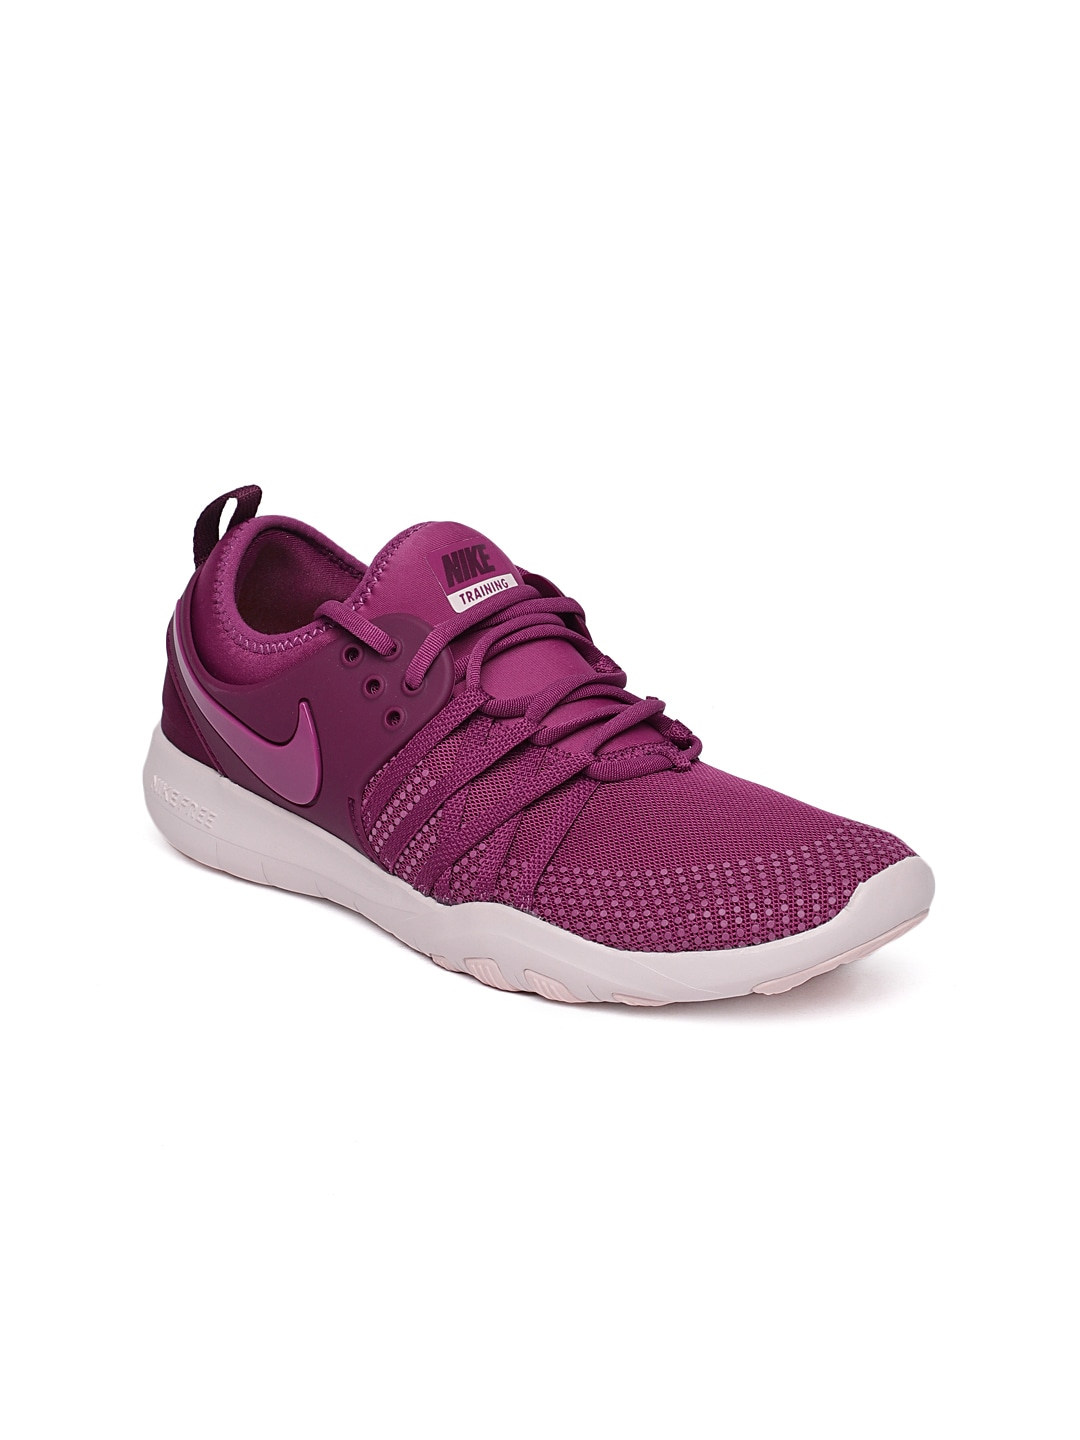 a2447cf4cb7 Nike Free - Buy Nike Free online in India